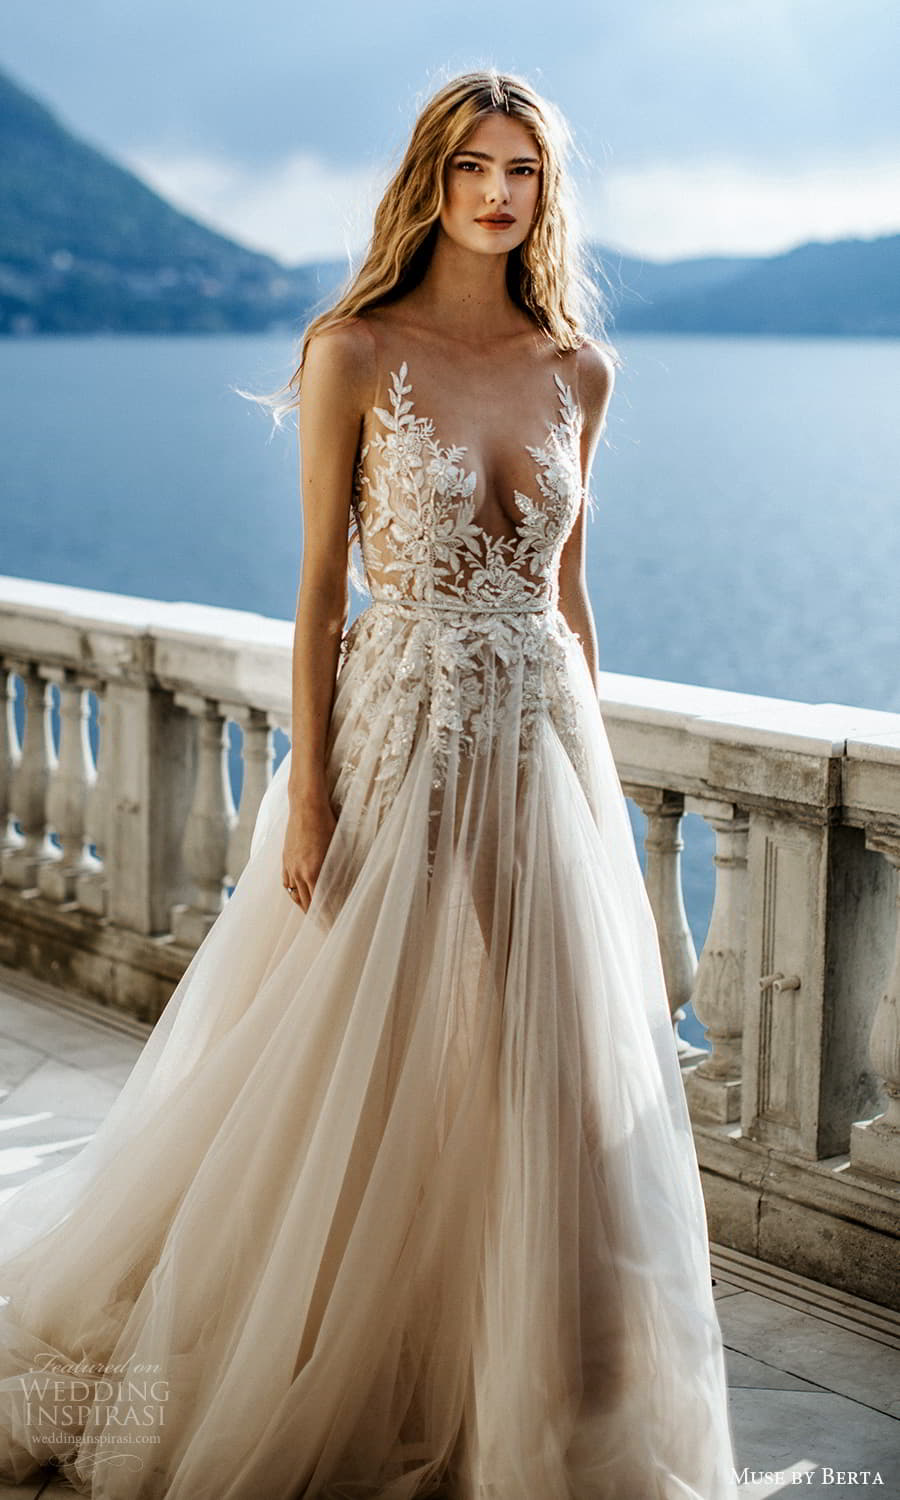 muse by berta spring 2022 bridal sleeveless straps plunging v neckline embellished bodice a line ball gown wedding dress chapel train (10) mv